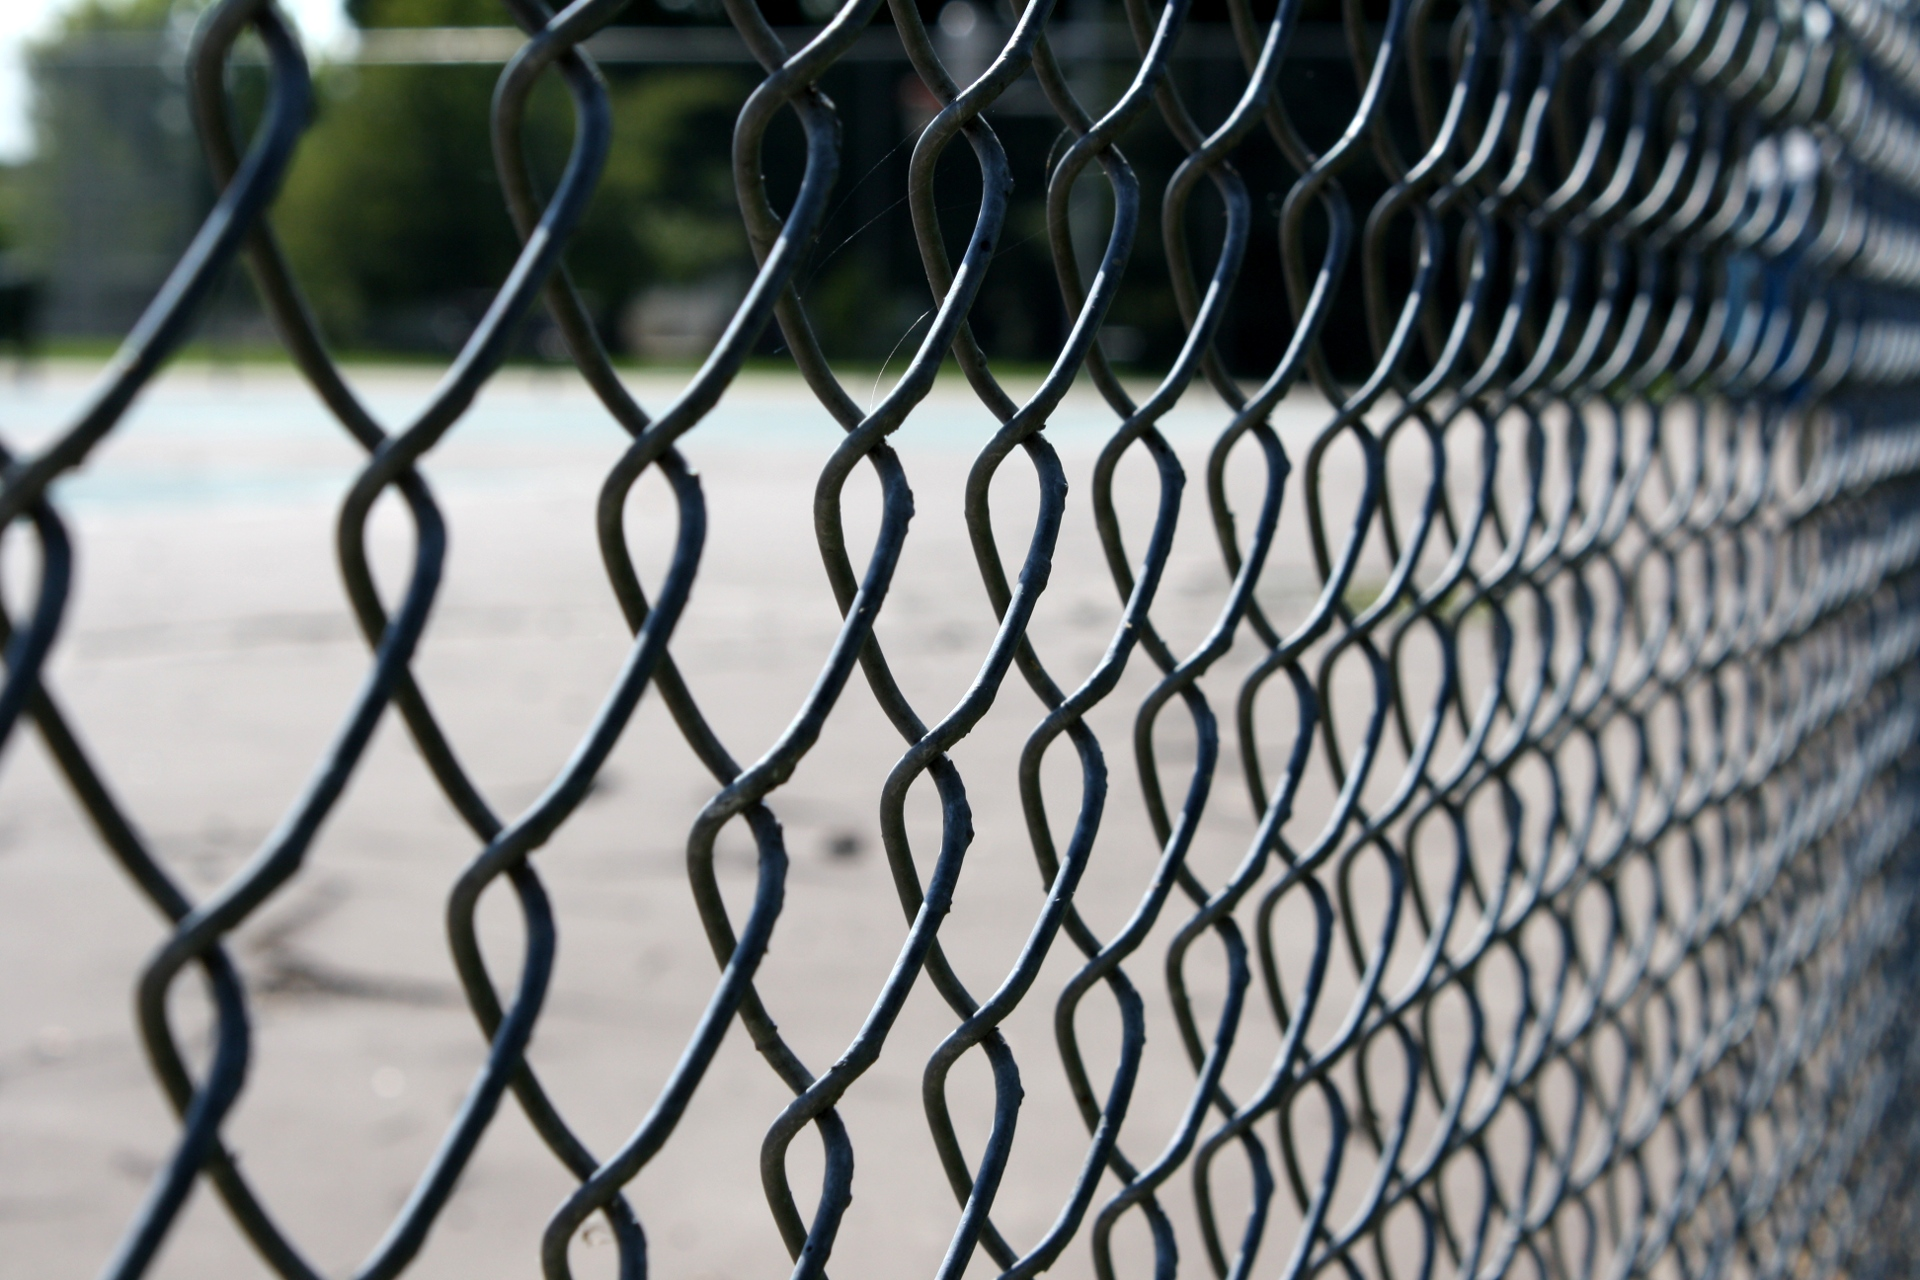 Chain Link Fence Wallpaper: Smithers Feed Store - Smithers, BC